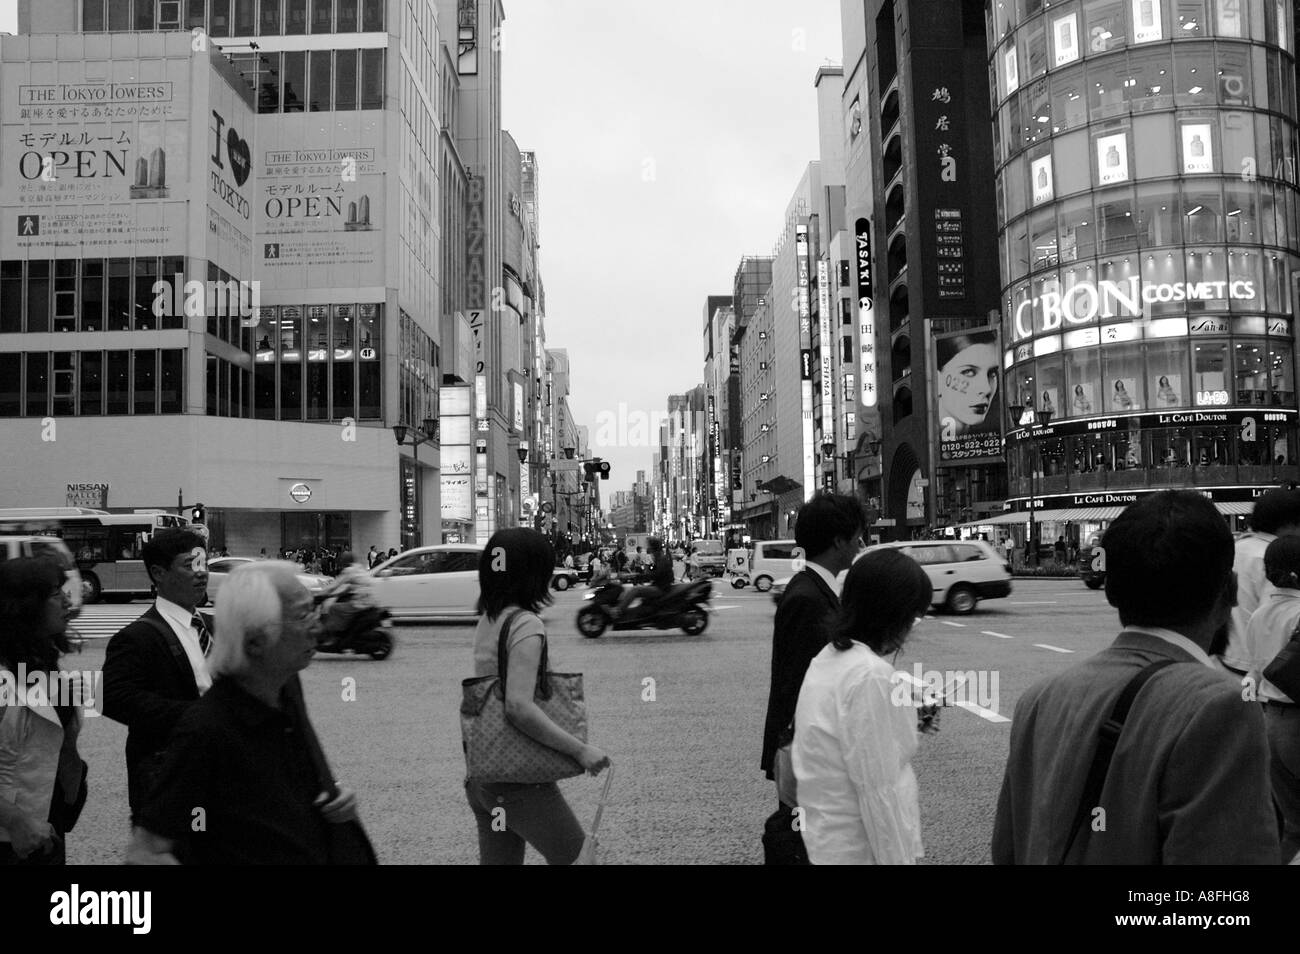 People at Crosswalk in Ginza Shopping District Tokyo Japan Stock Photo